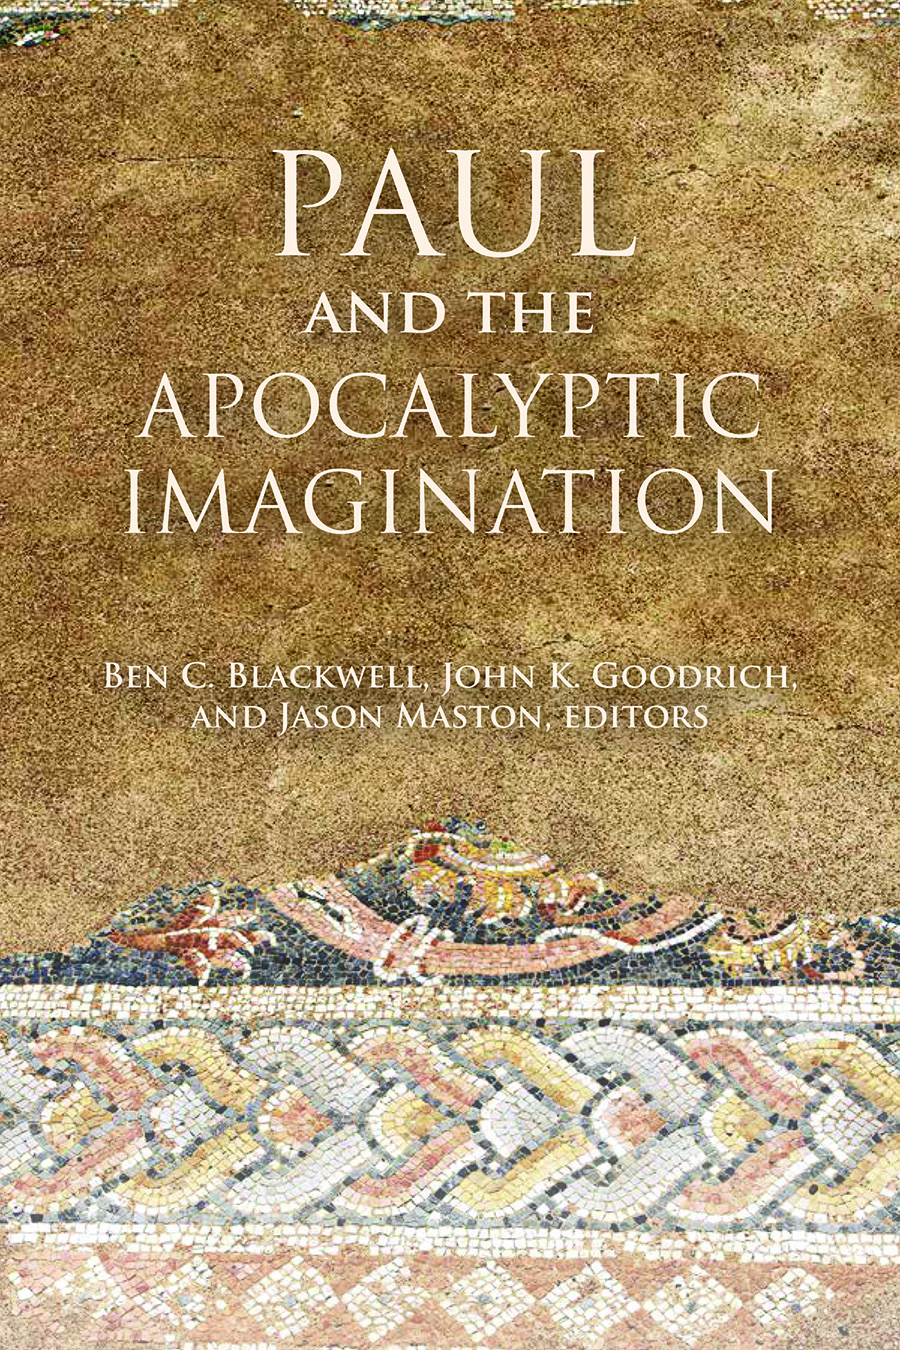 Paul and the Apocalyptic Imagination: An Introduction